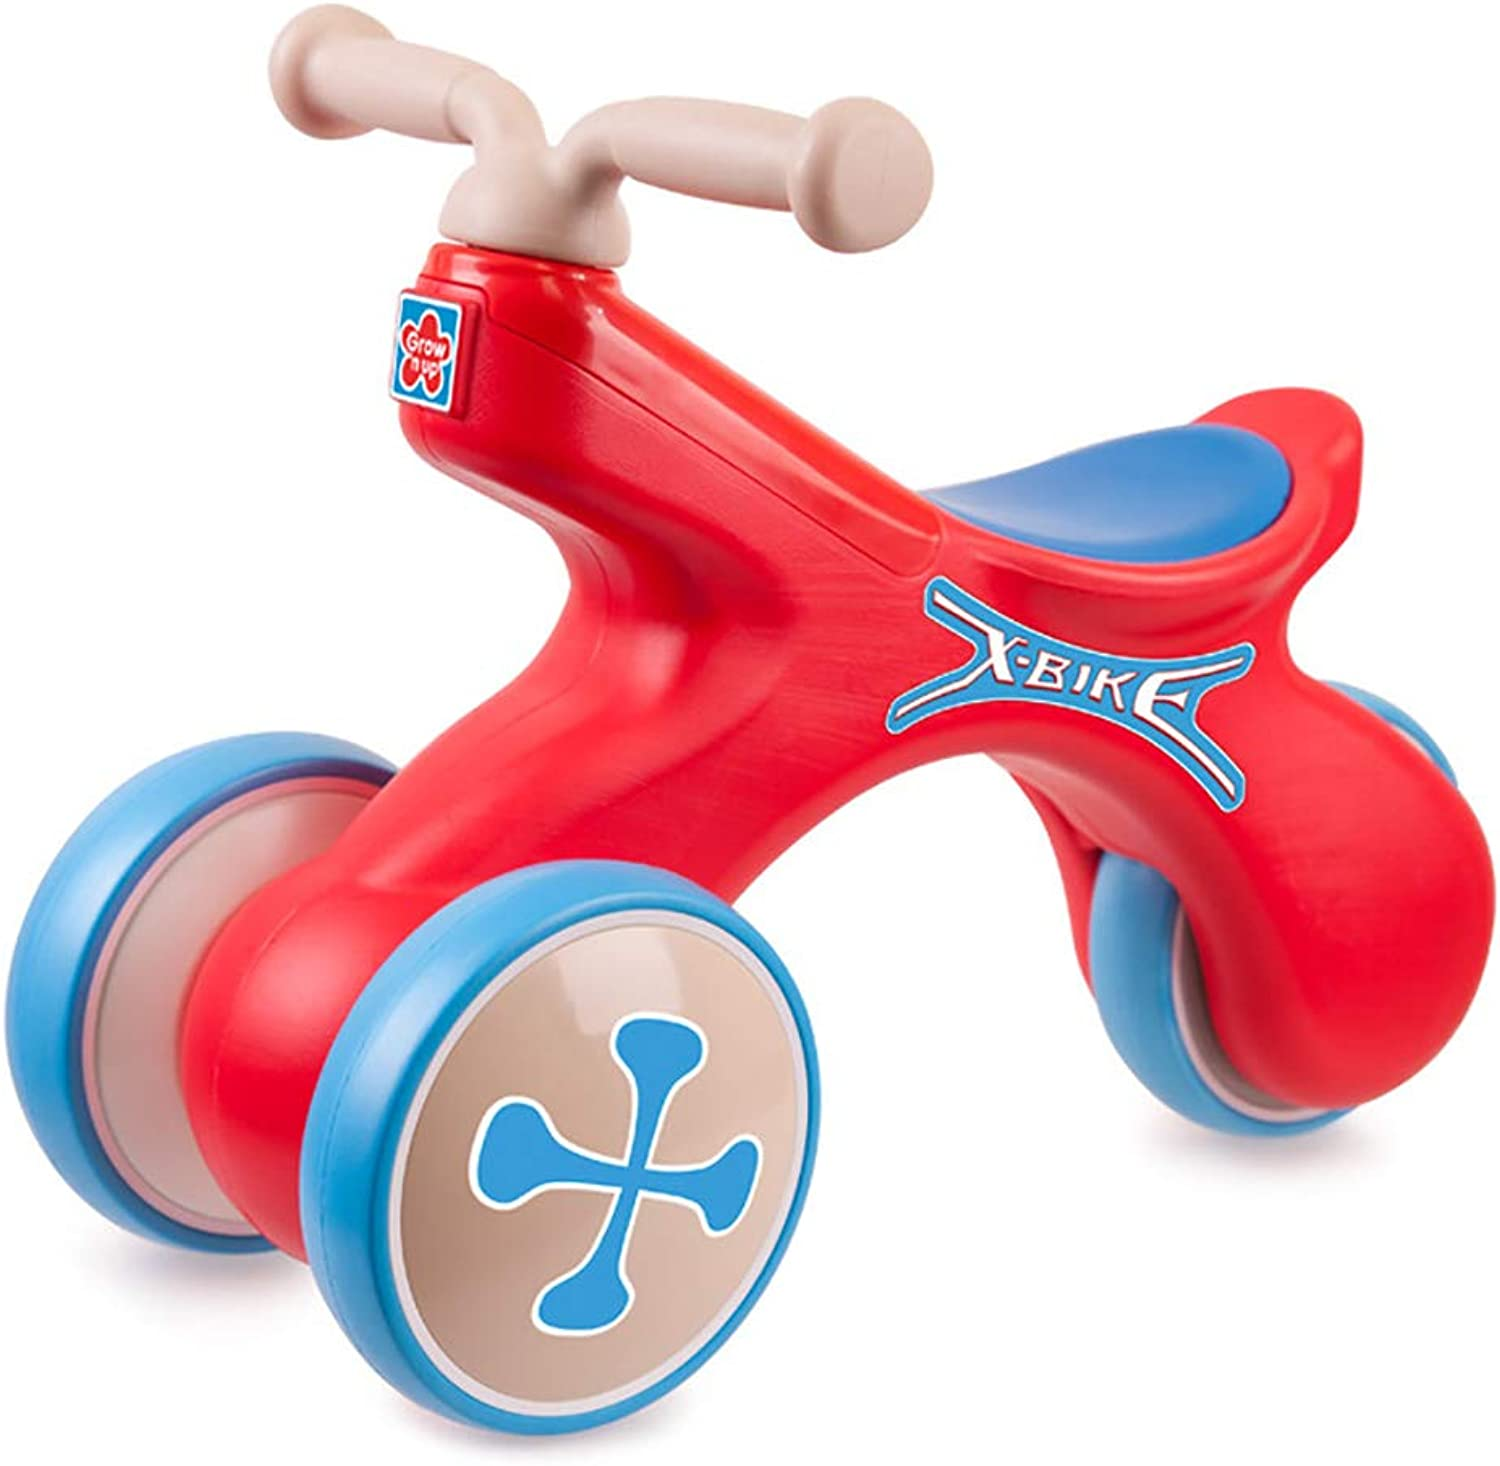 Baby Slide Toddler Baby Balance Car Without Pedals Baby Bicycle 1-4 Years Old Baby Toy Walker Without Pedals Can Take A Tricycle